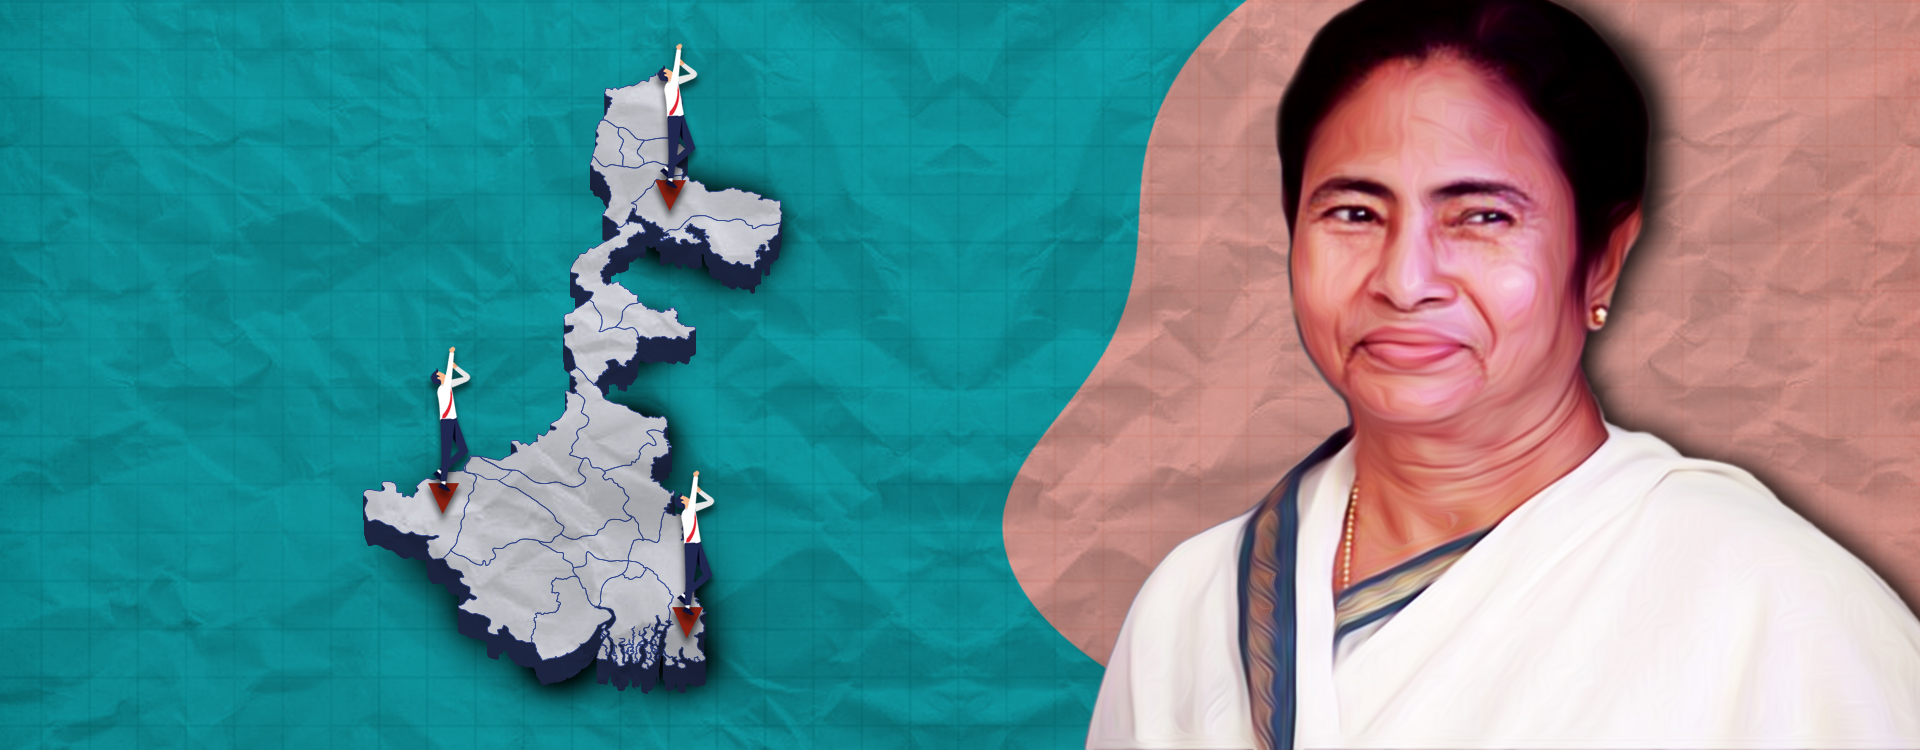 Bengal Startup Culture is all set under Mamata Baneerje Government